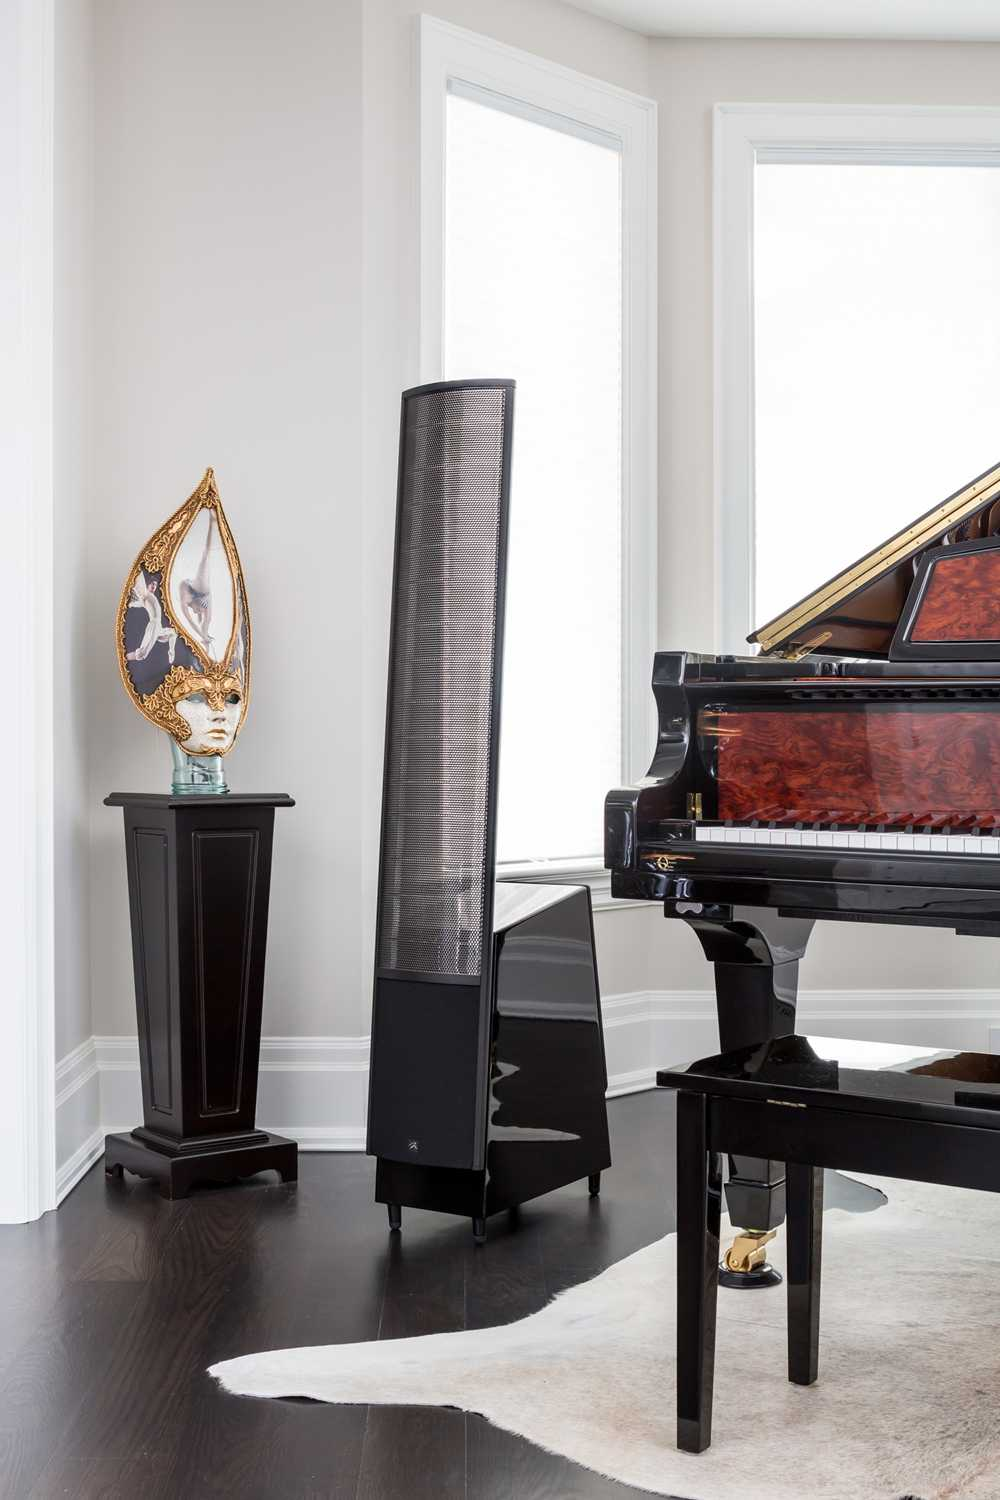 MartinLogan | Premium HiFi Speakers for Home Theater & Stereo